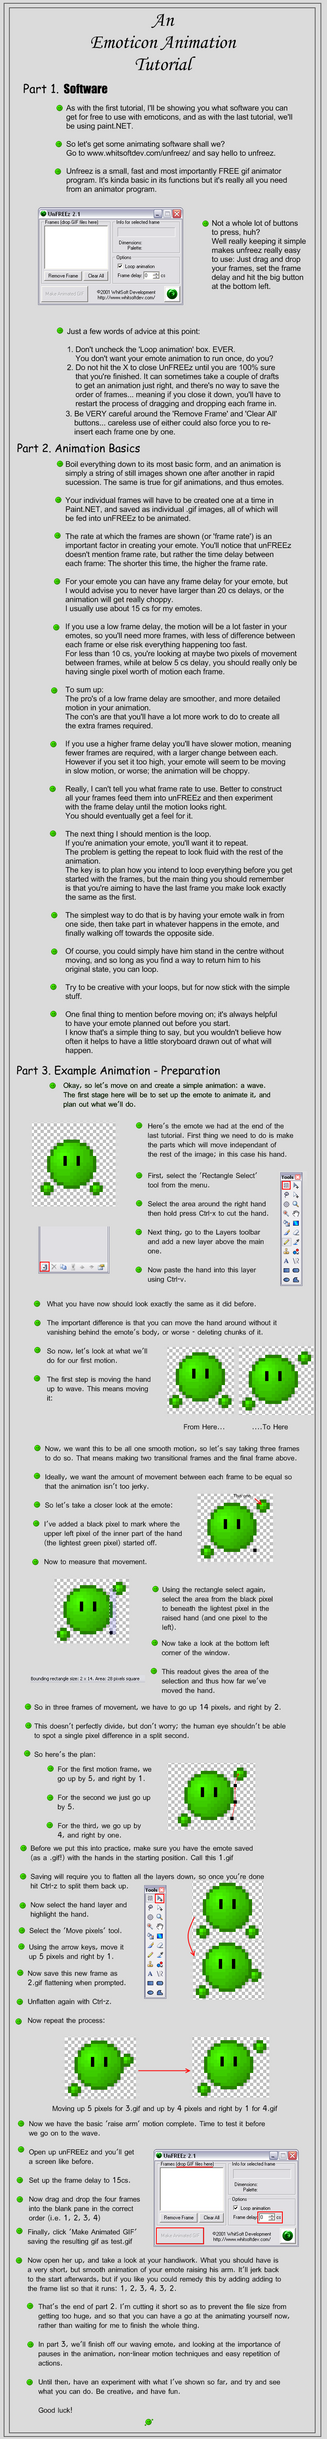 Emoticon Tutorial Part 2 by Jtcgh